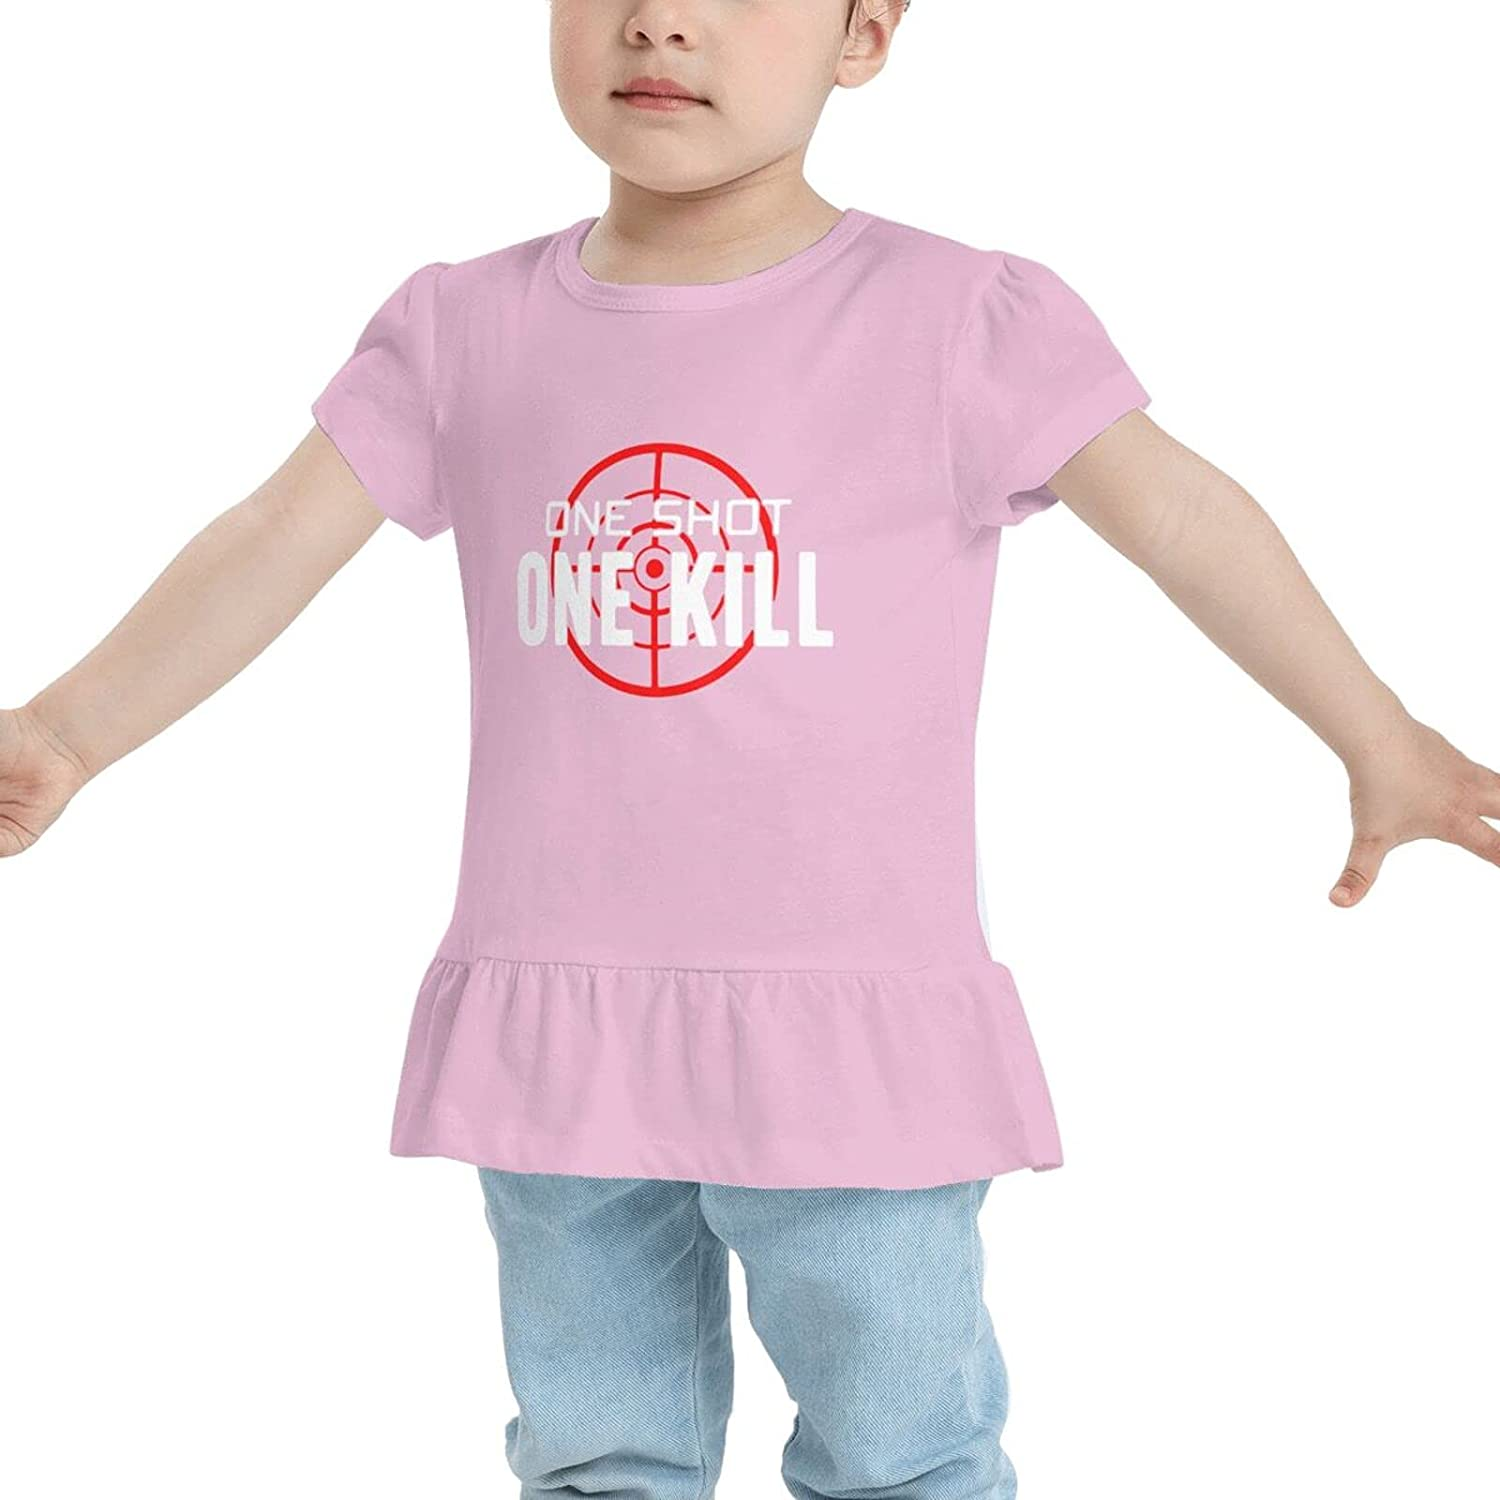 Stay Low Go Fast One Shot One Kill Baby Girls Cotton T-Shirt T-Shirt Dresses